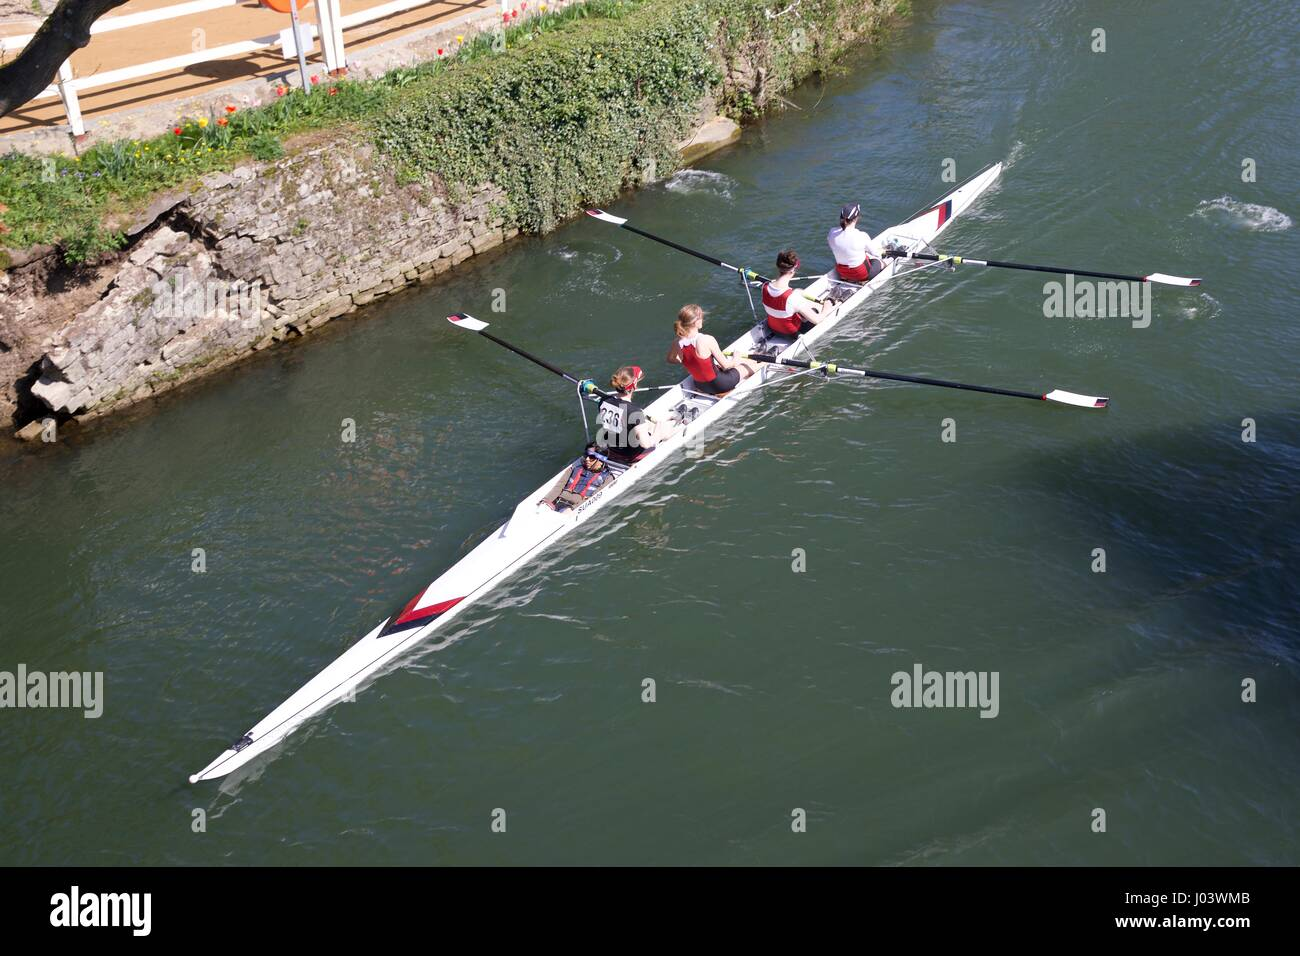 A coxed four rowing boat at Abingdon-on-Thames - Stock Image